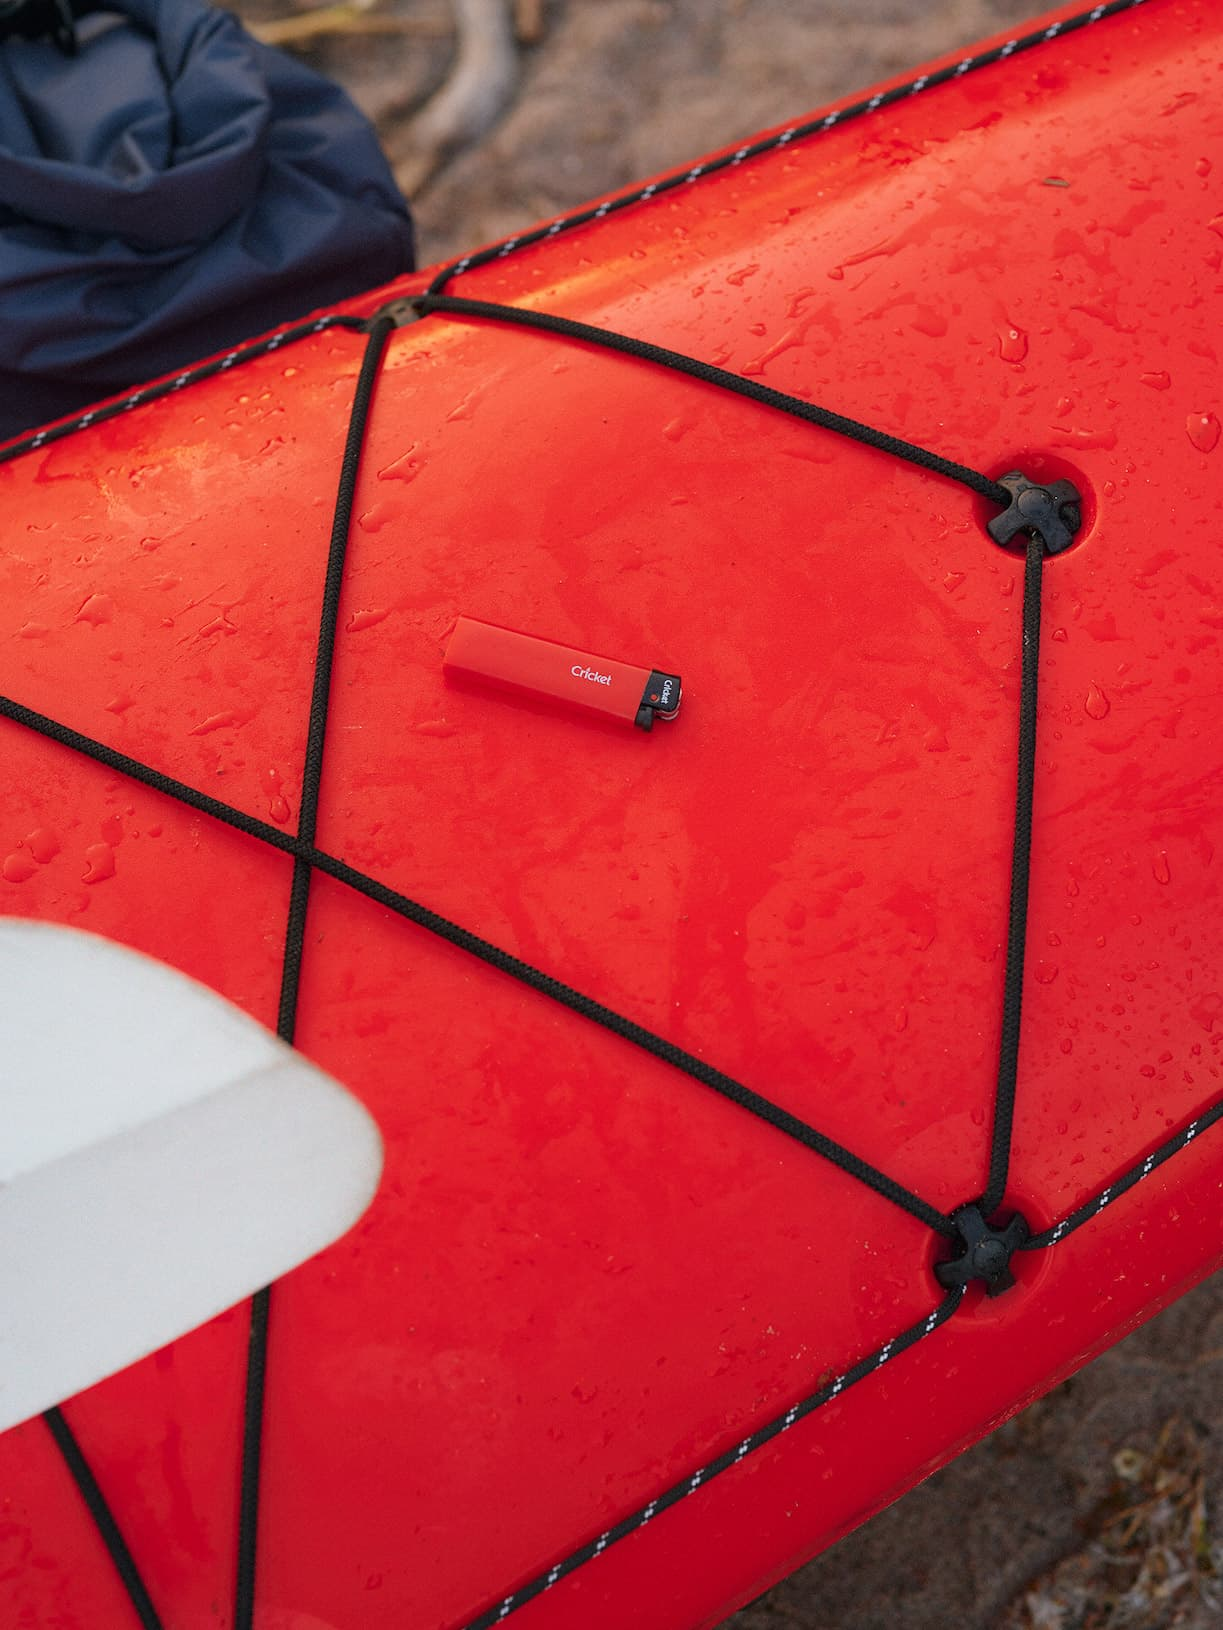 Closeup of a red kayak with a red Cricket lighter on it